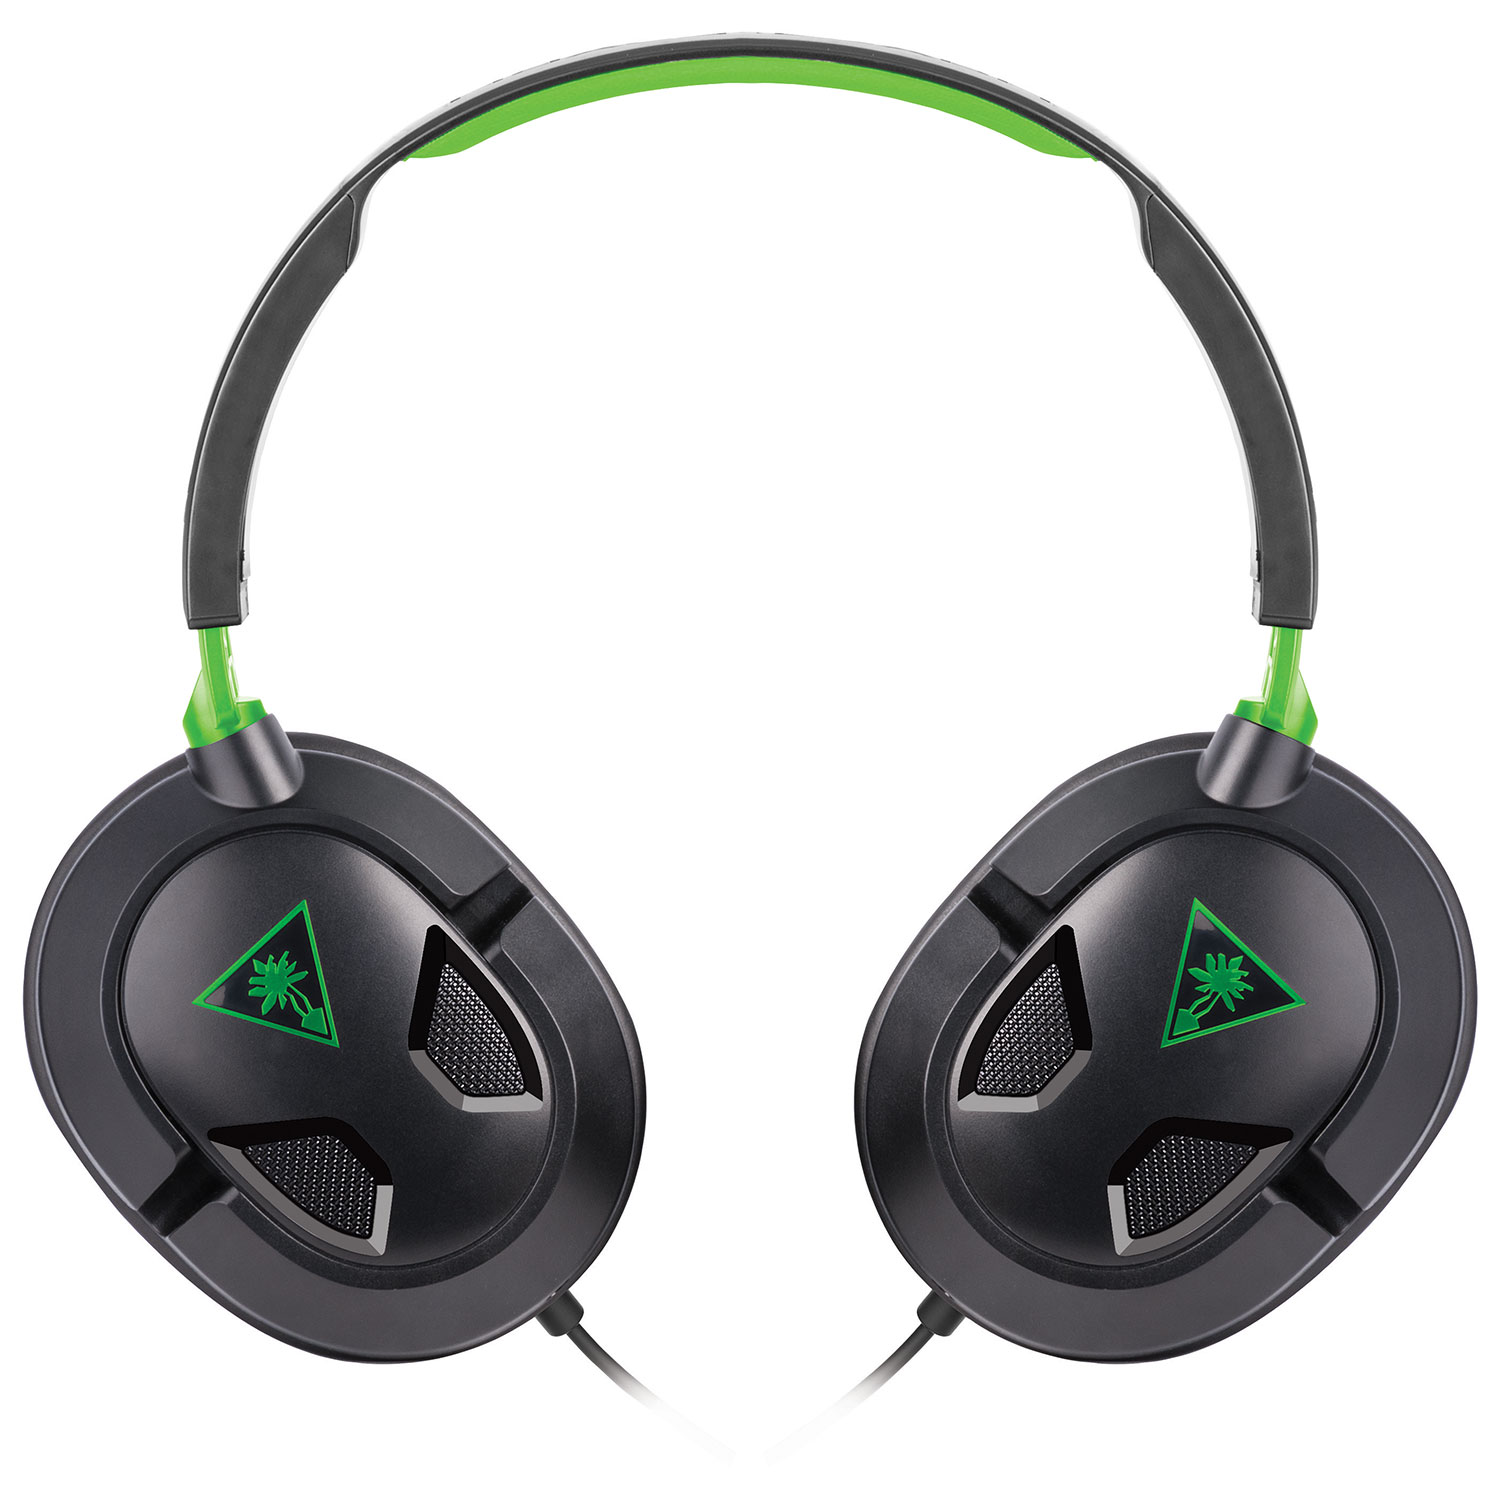 Wiring Diagram For Turtle Beach Recon